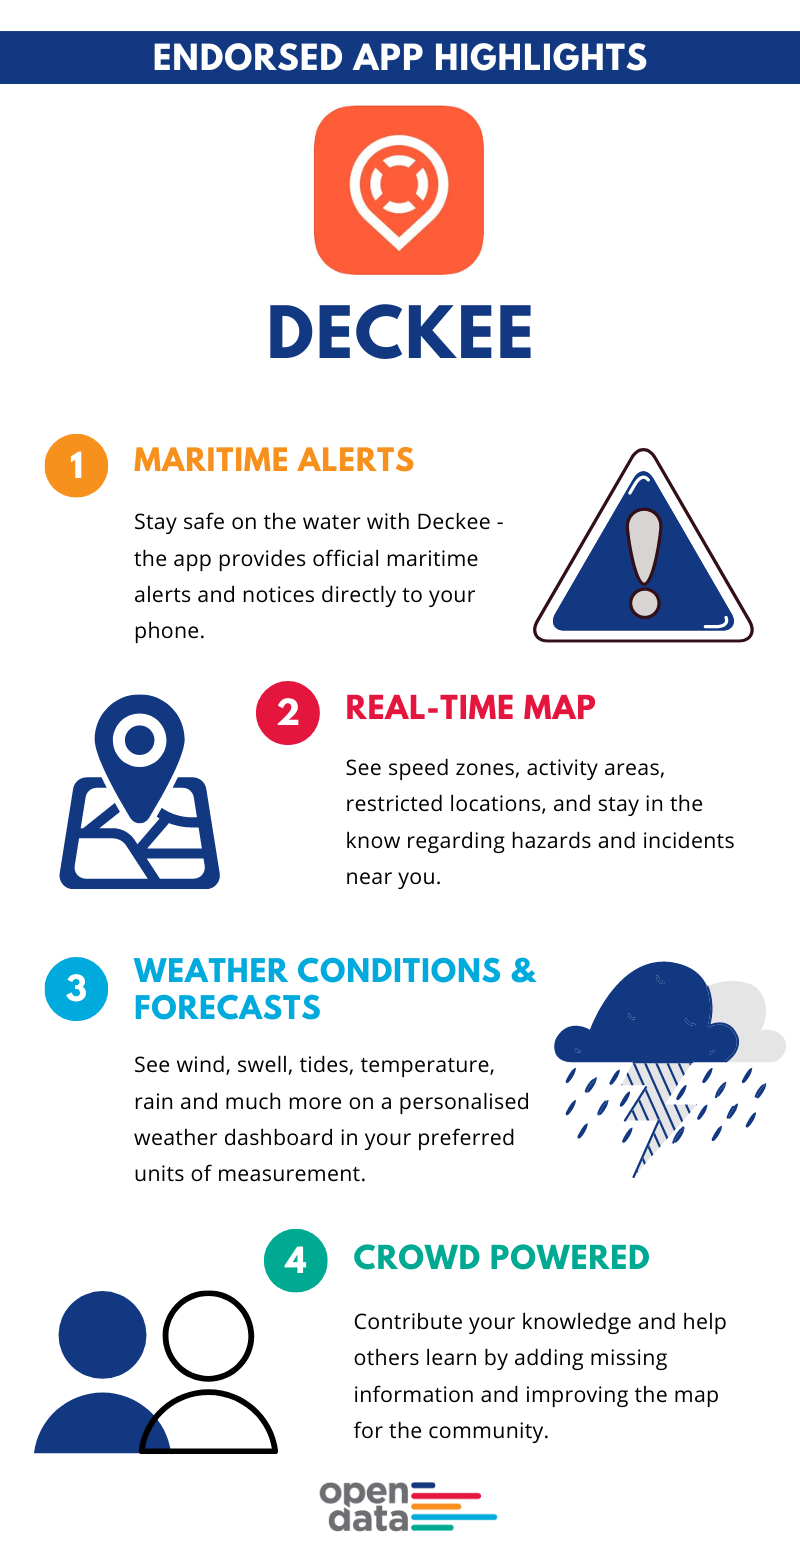 The Deckee boating app features maritime alerts, weather conditions and forecasts, and crowd-sourced information.